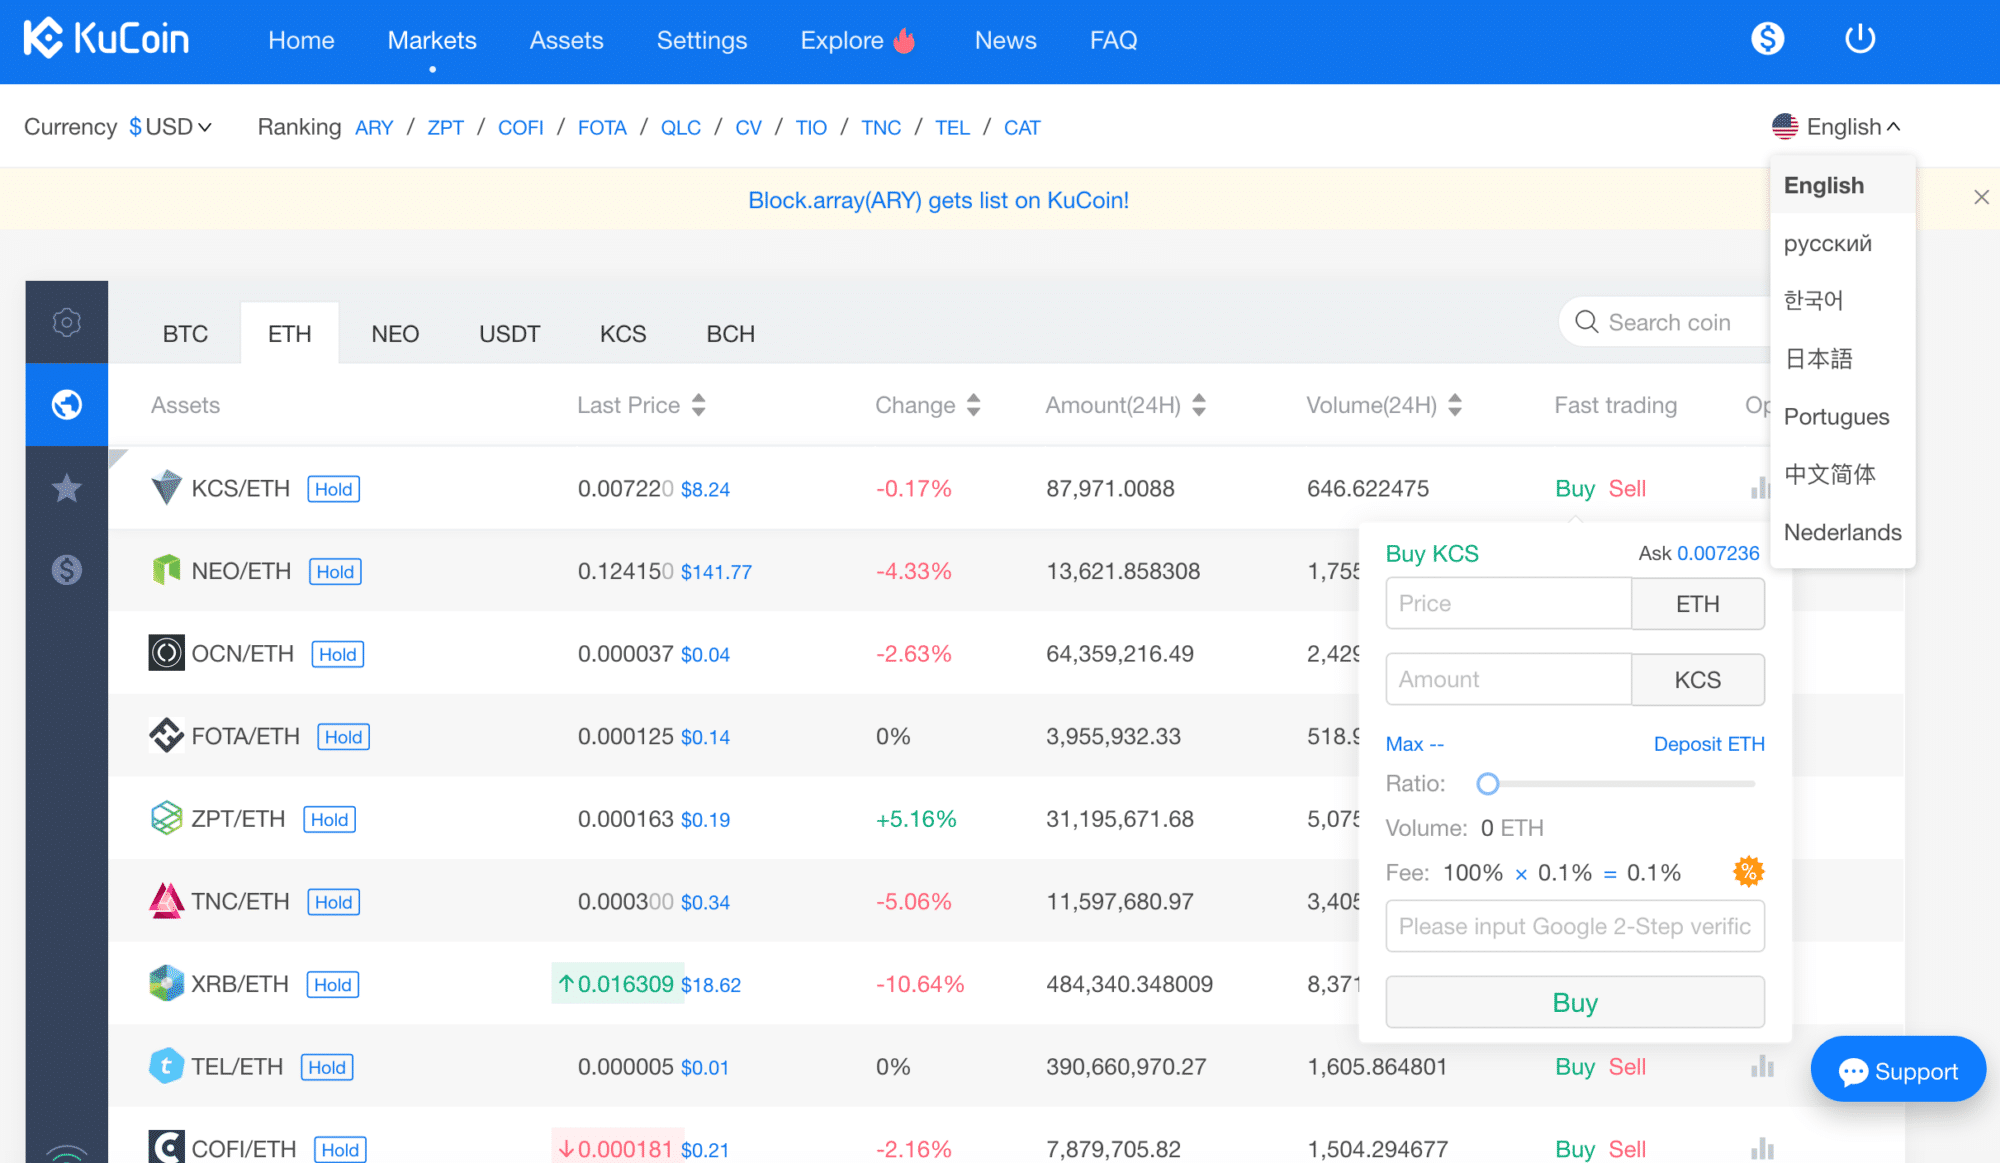 giao-dien-kucoin.png